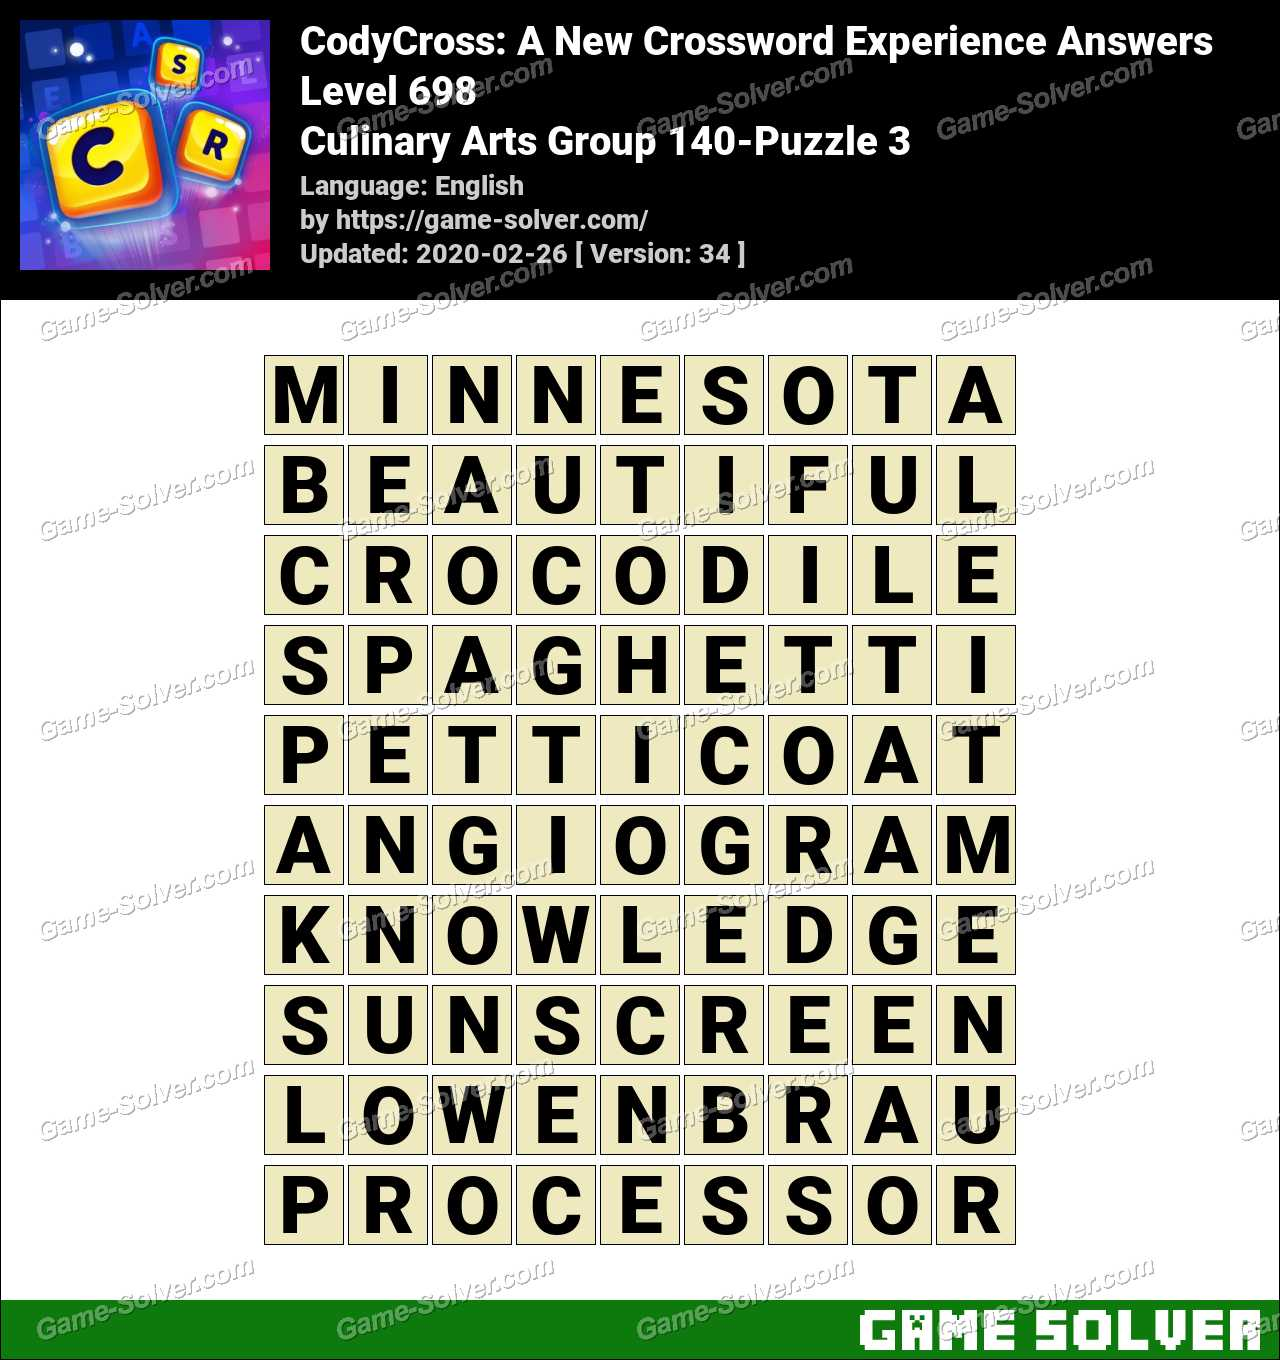 CodyCross Culinary Arts Group 140-Puzzle 3 Answers